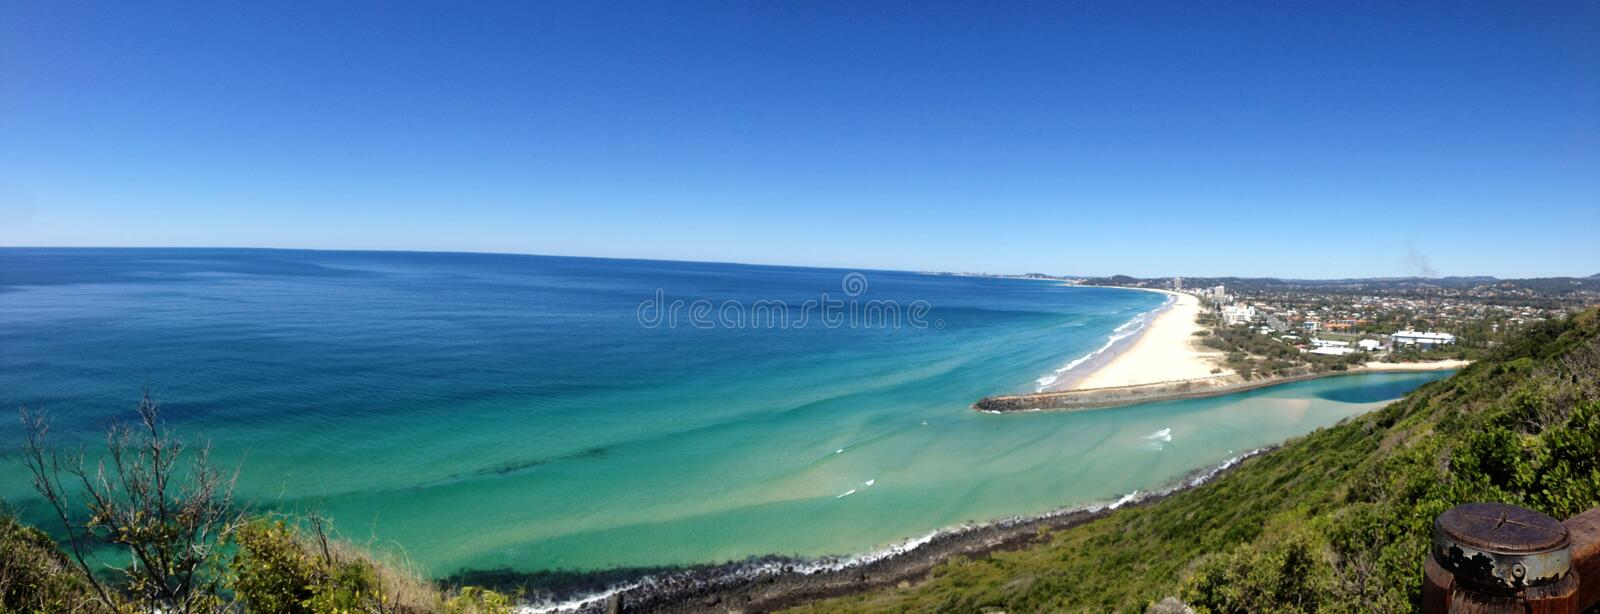 Vue de Palm Beach images libres de droits